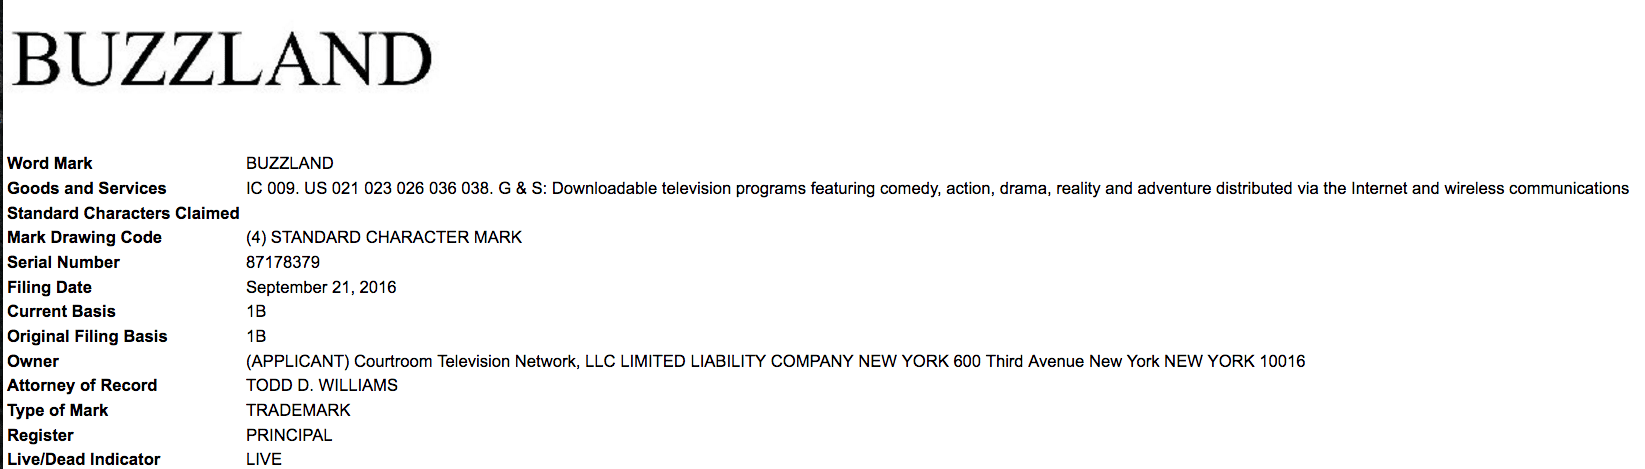 courtroom-television-network-have-filed-a-trademark-application-for-buzzland